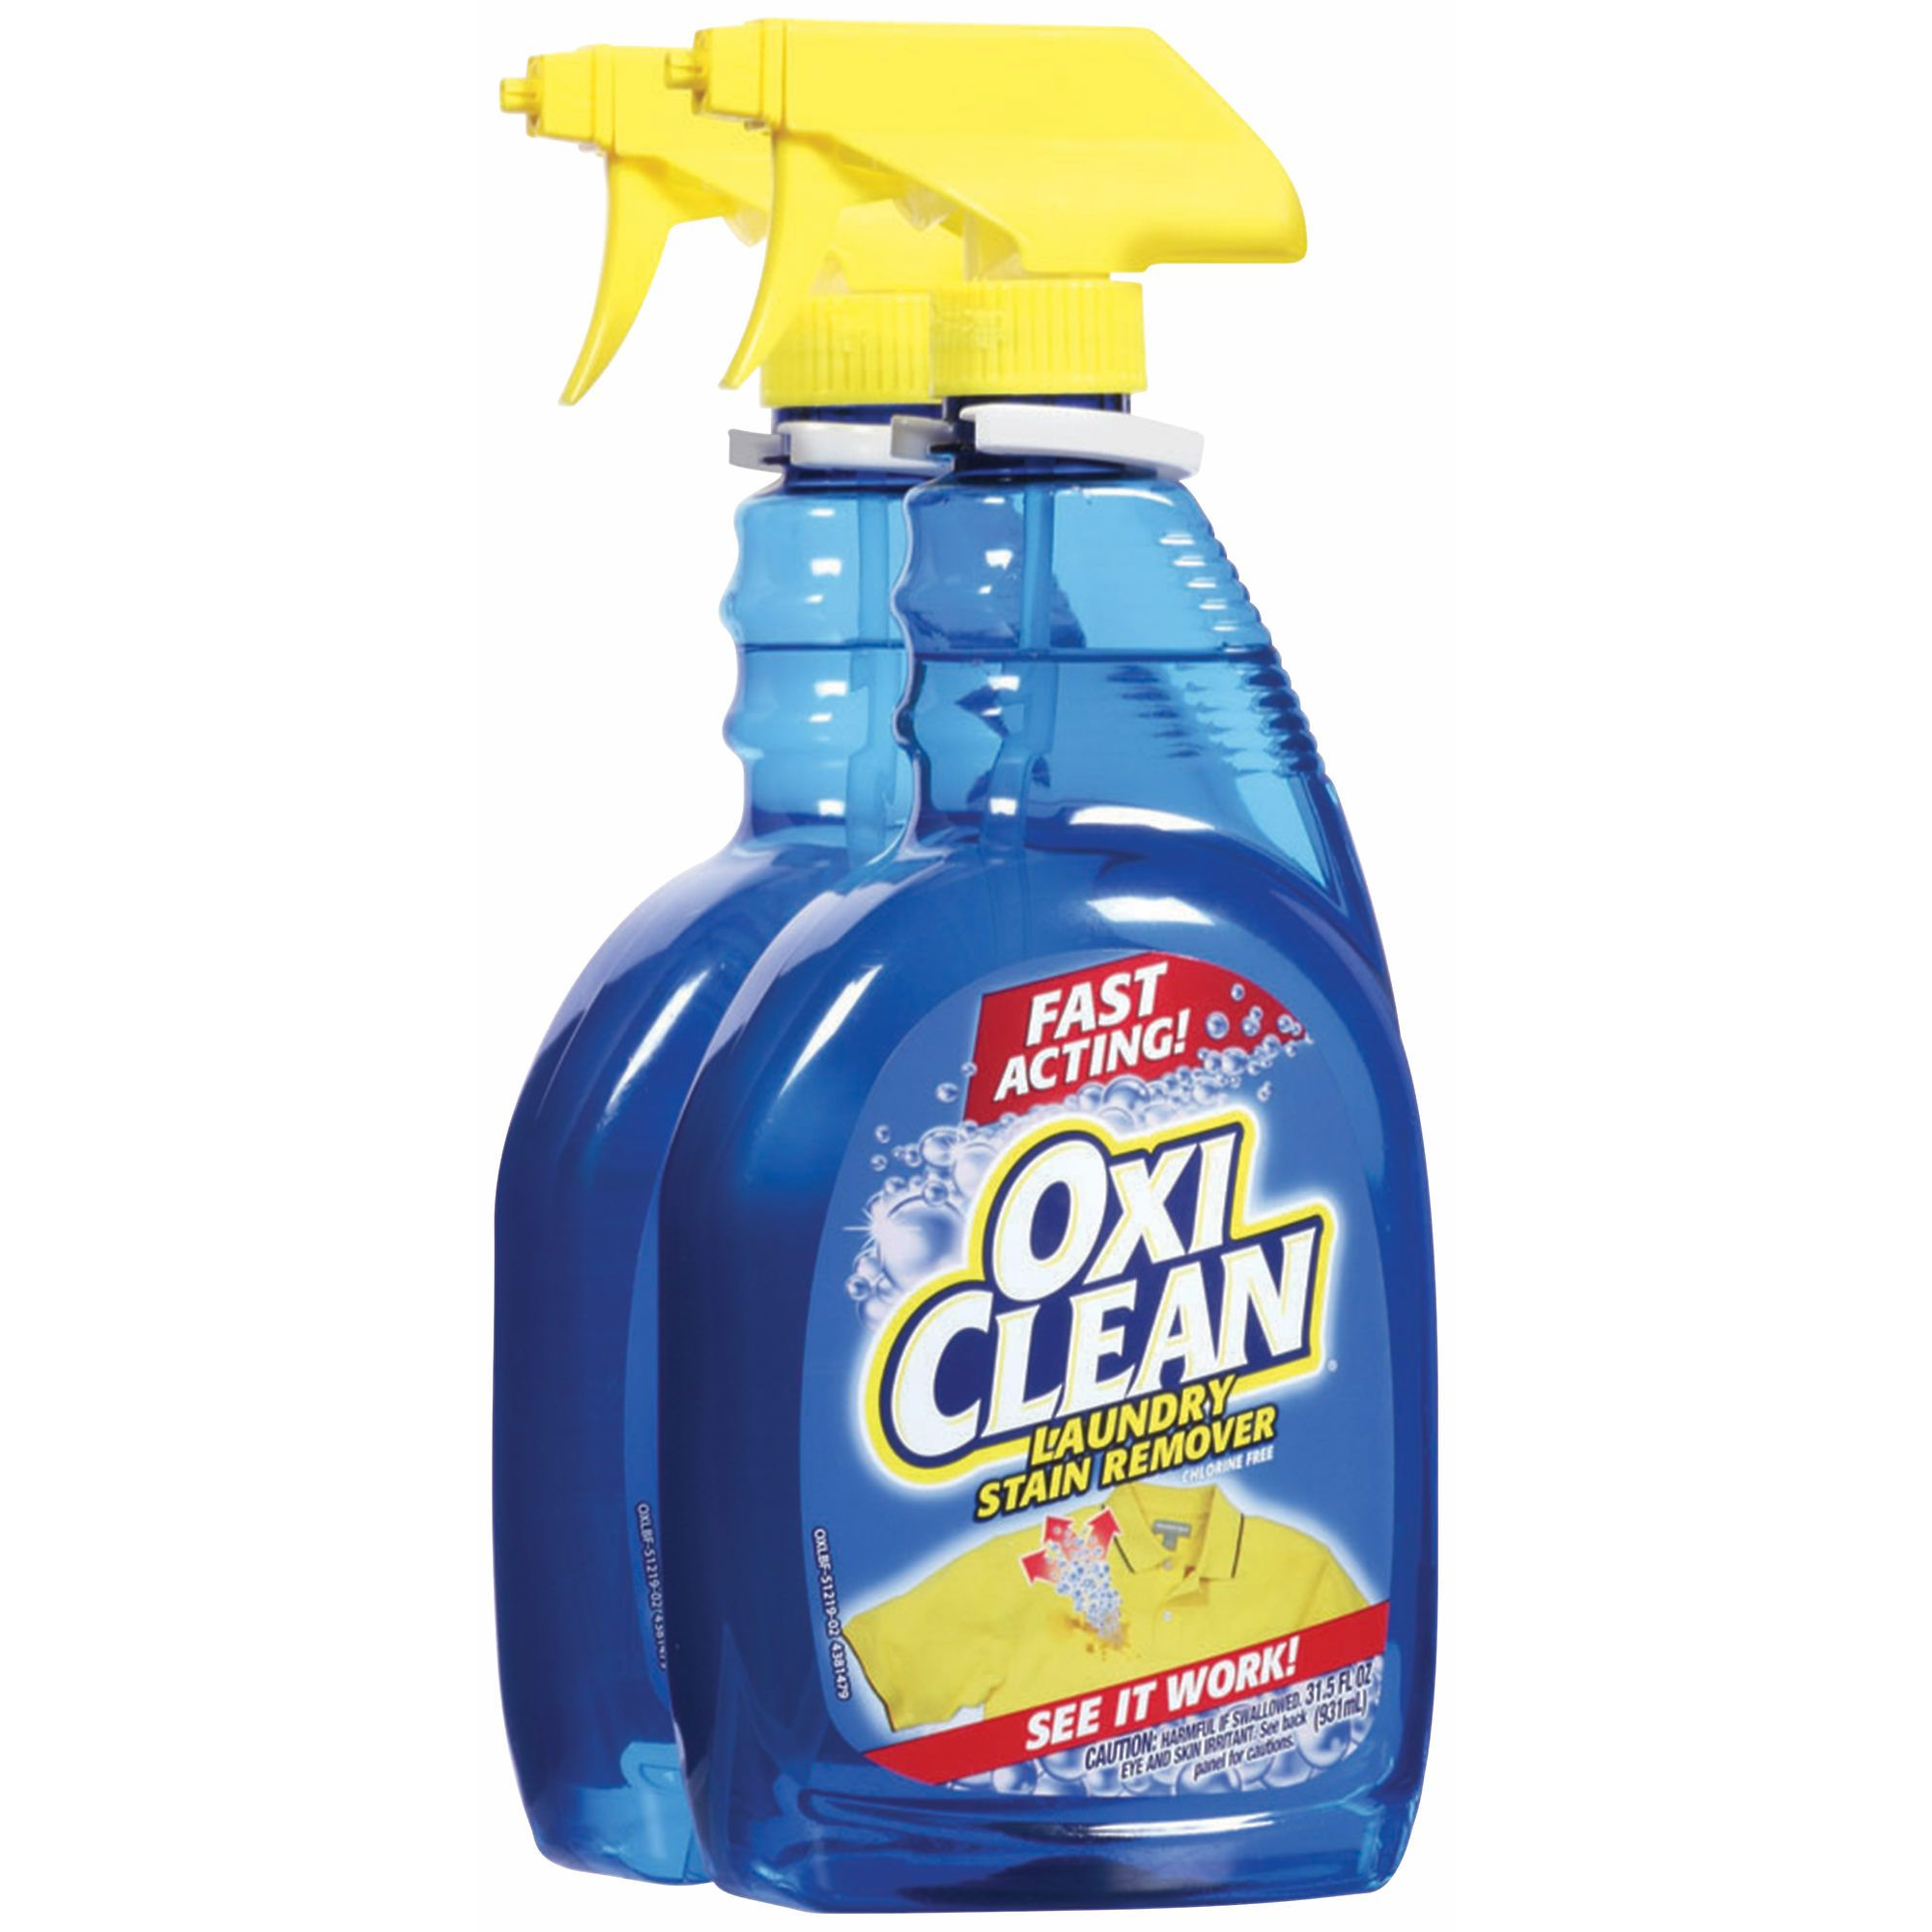 Meijer Oxiclean Laundry Spray Only 0 93 Laundry Stain Remover